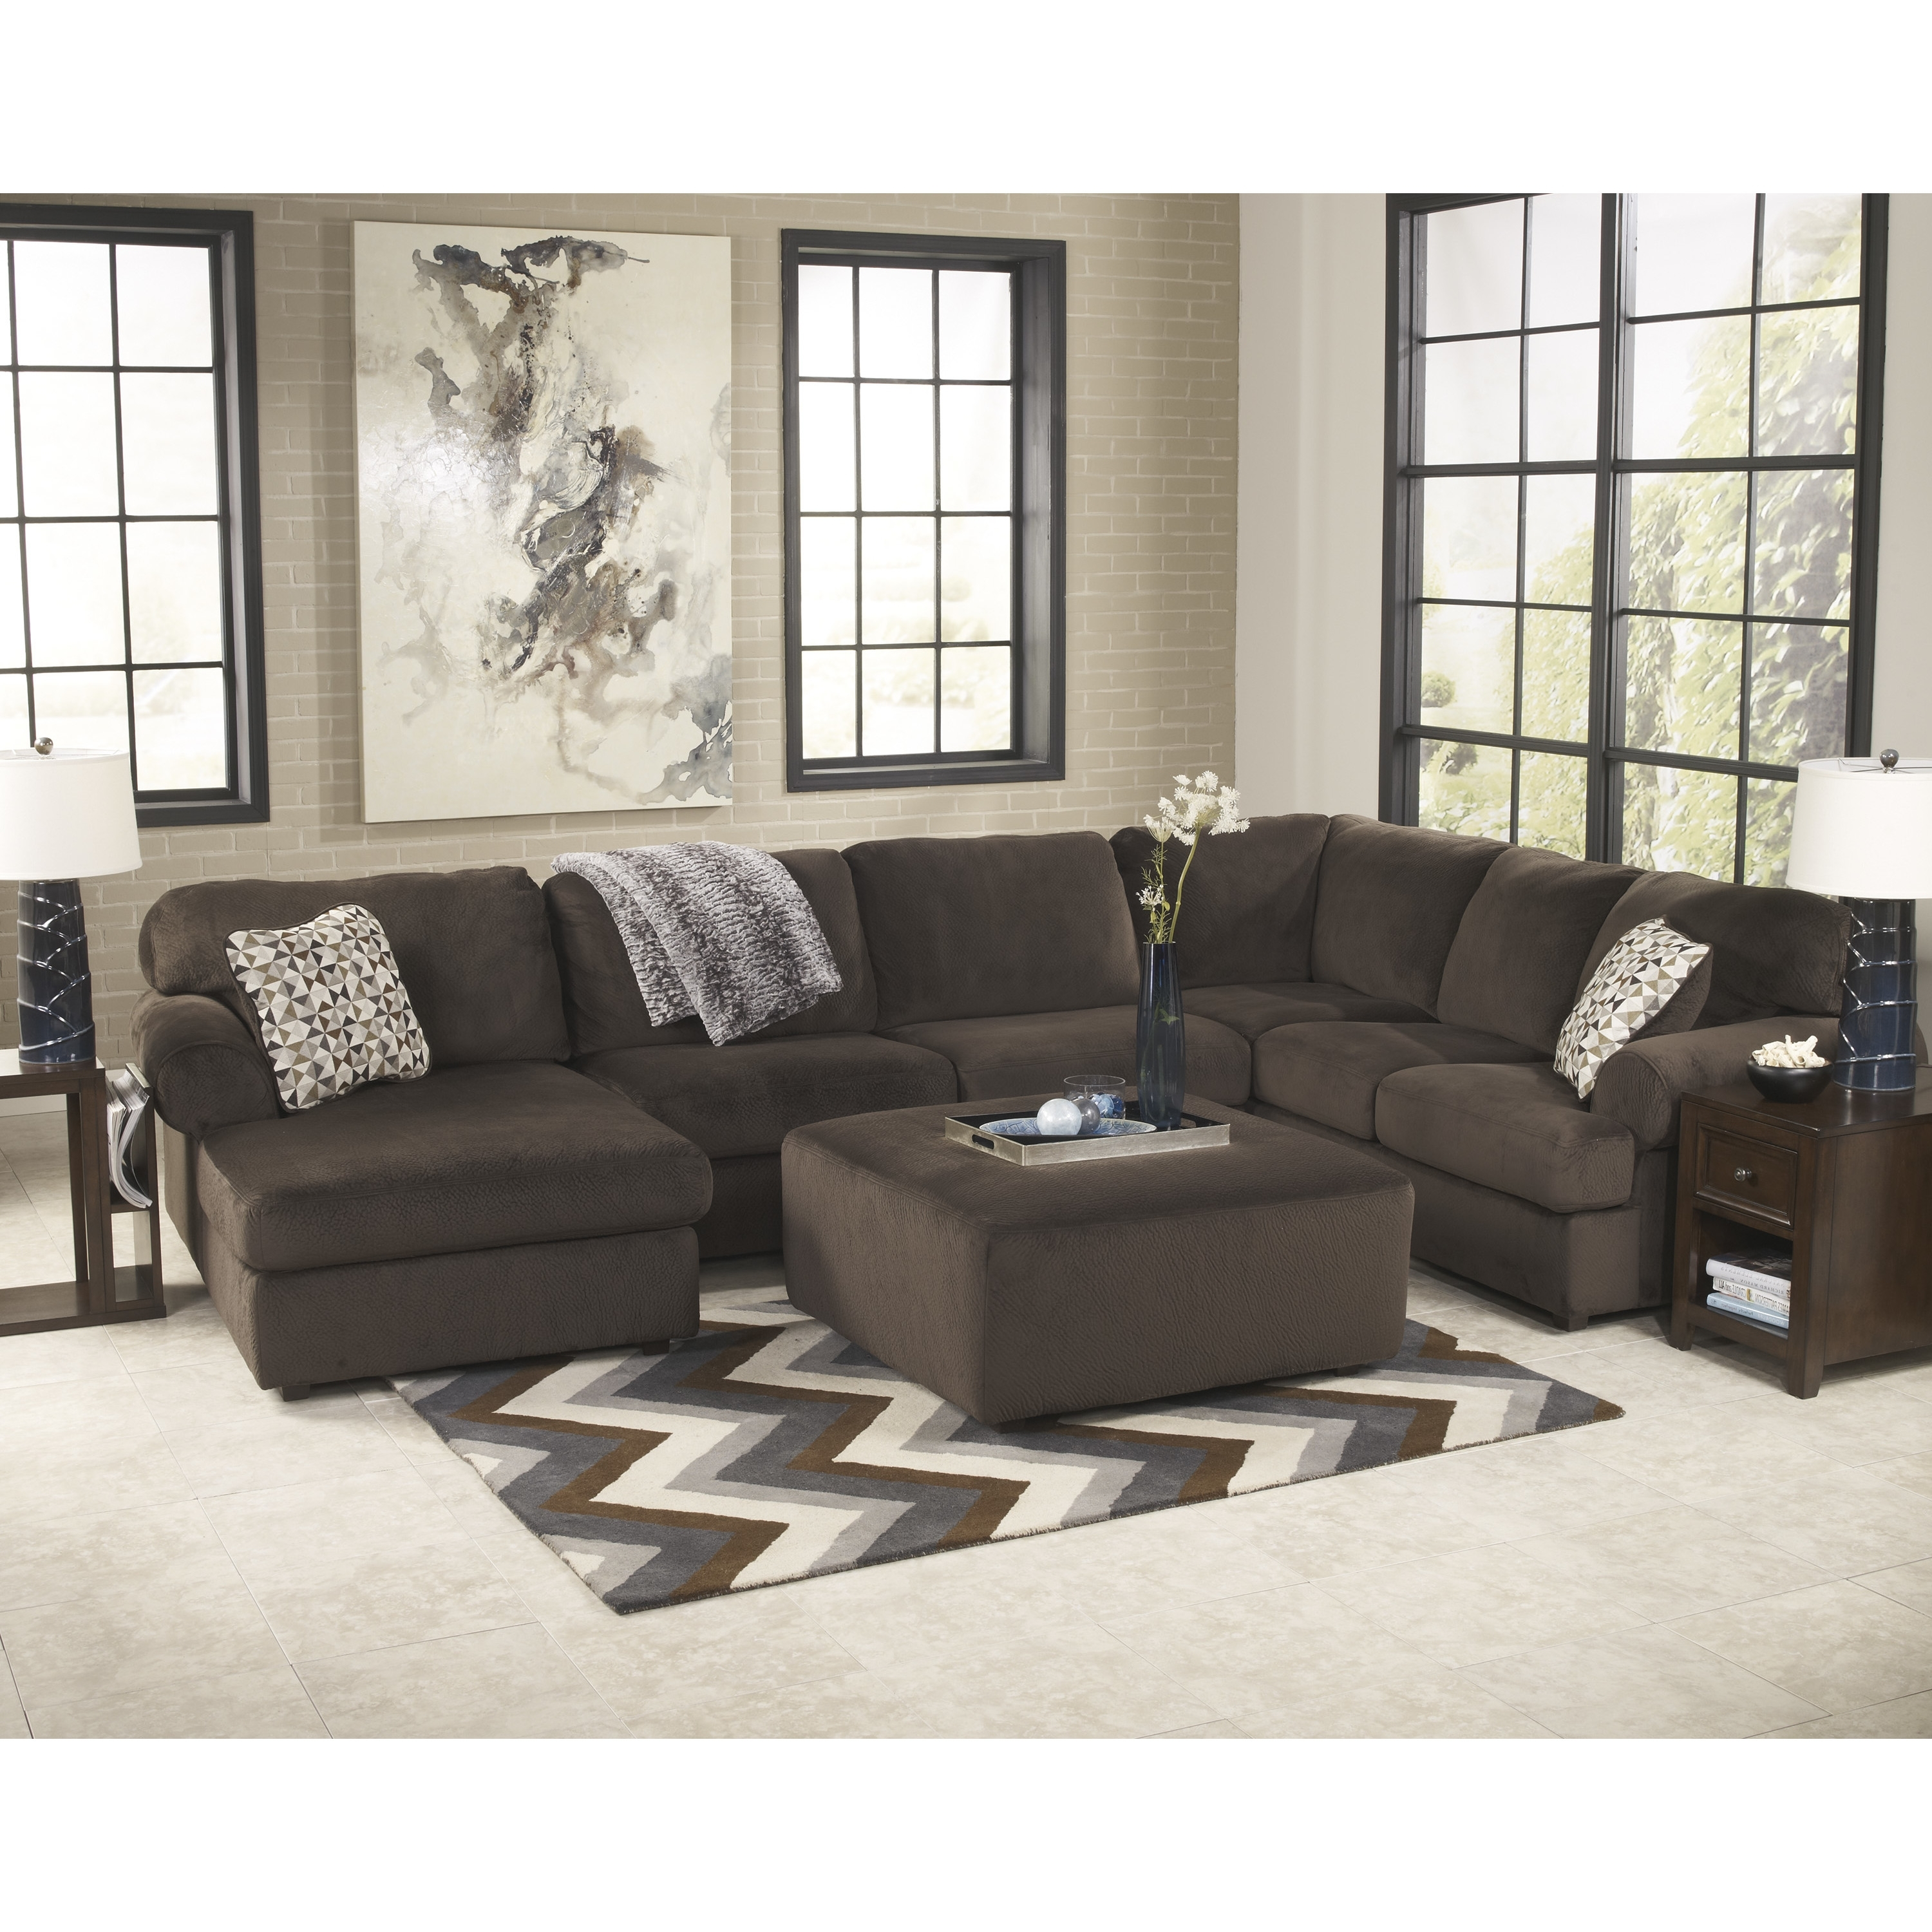 Free Wayfair Sectionals Furniture Using Pretty Cheap Sectional Sofas With Wayfair Sectional Sofas (Image 3 of 10)